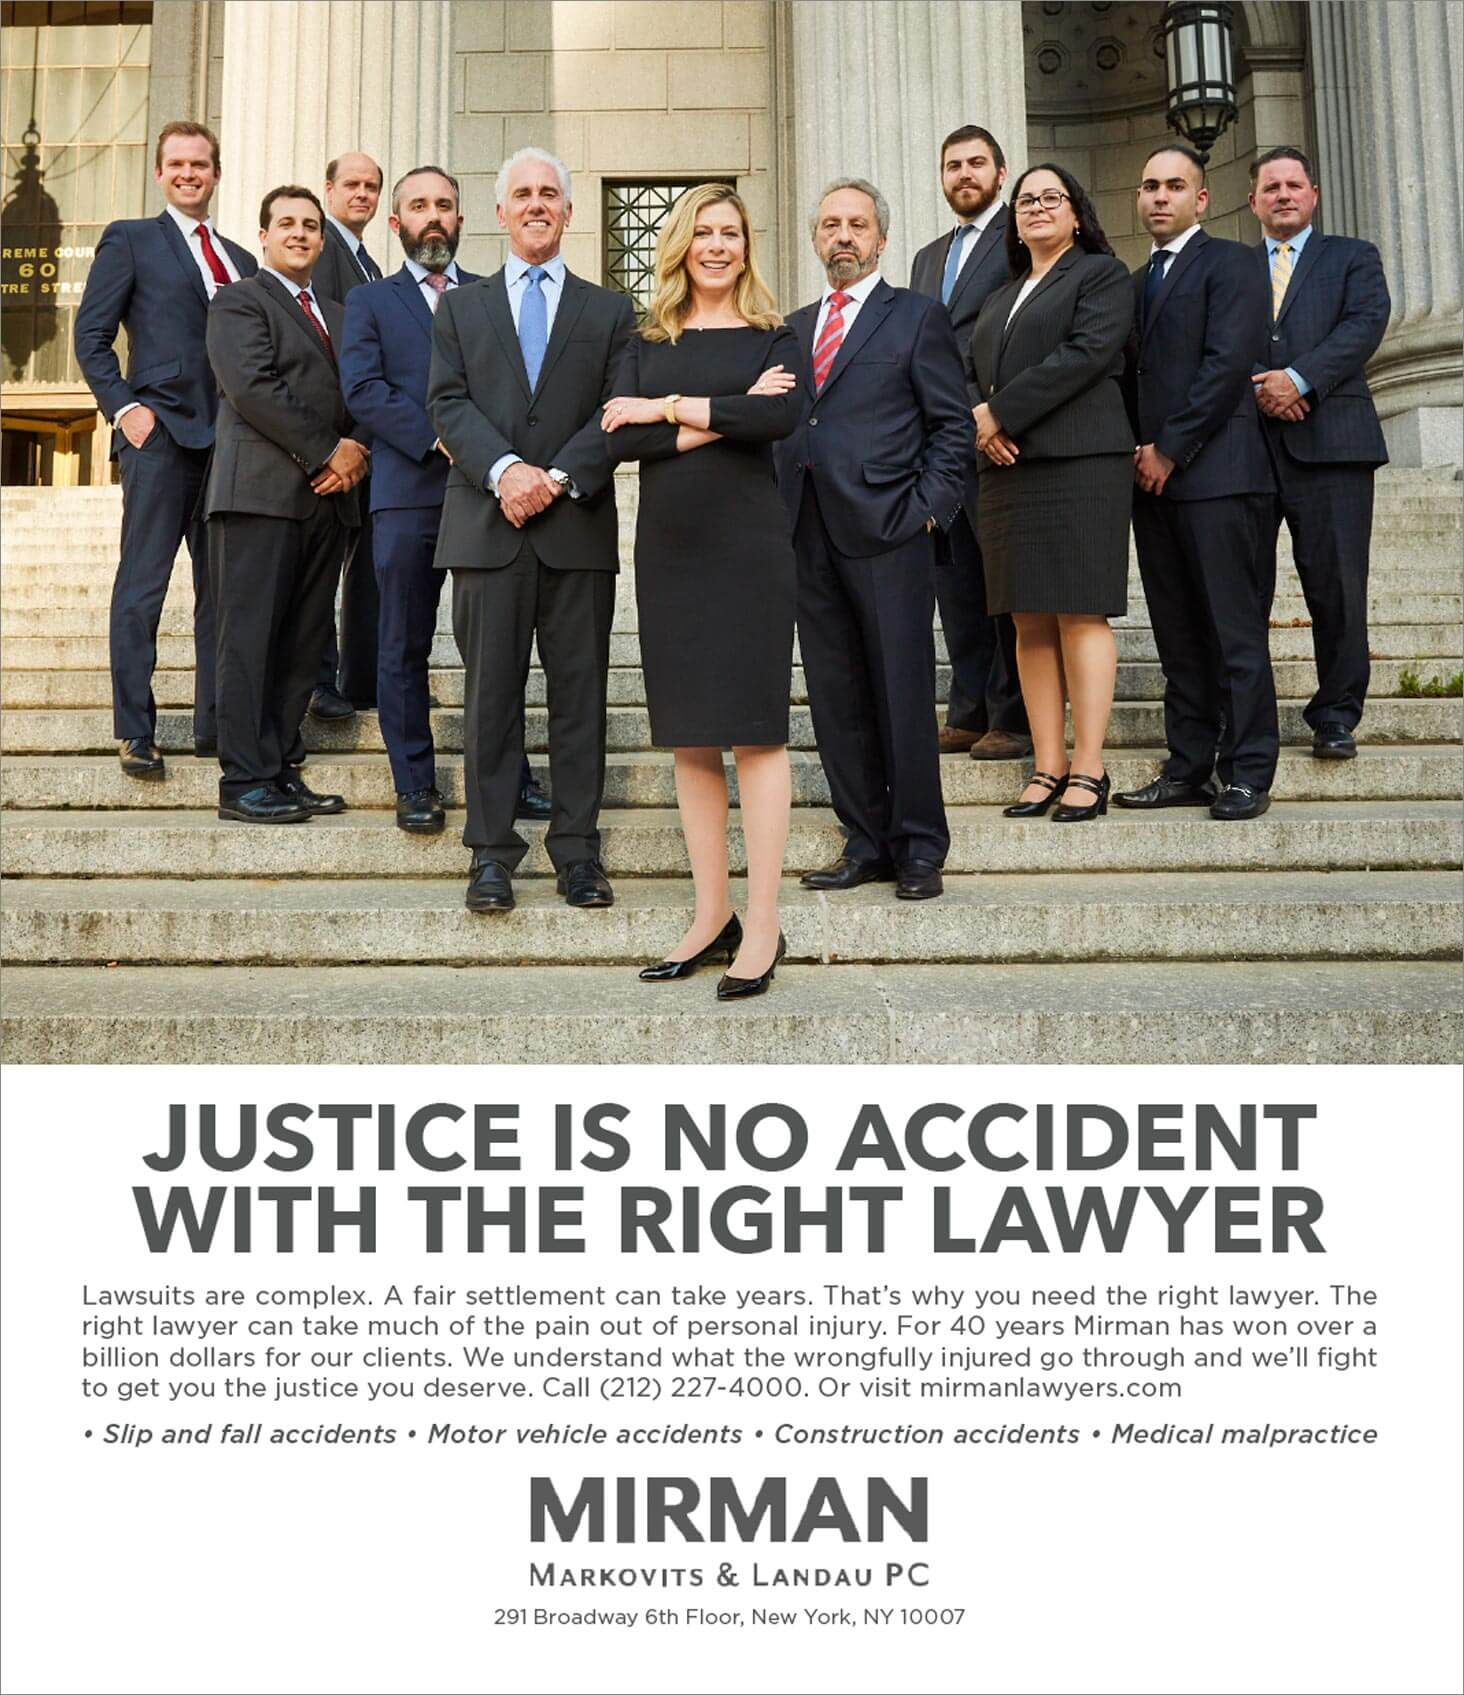 Mirman Markovits and Landau. Justice is no accident with the right lawyer